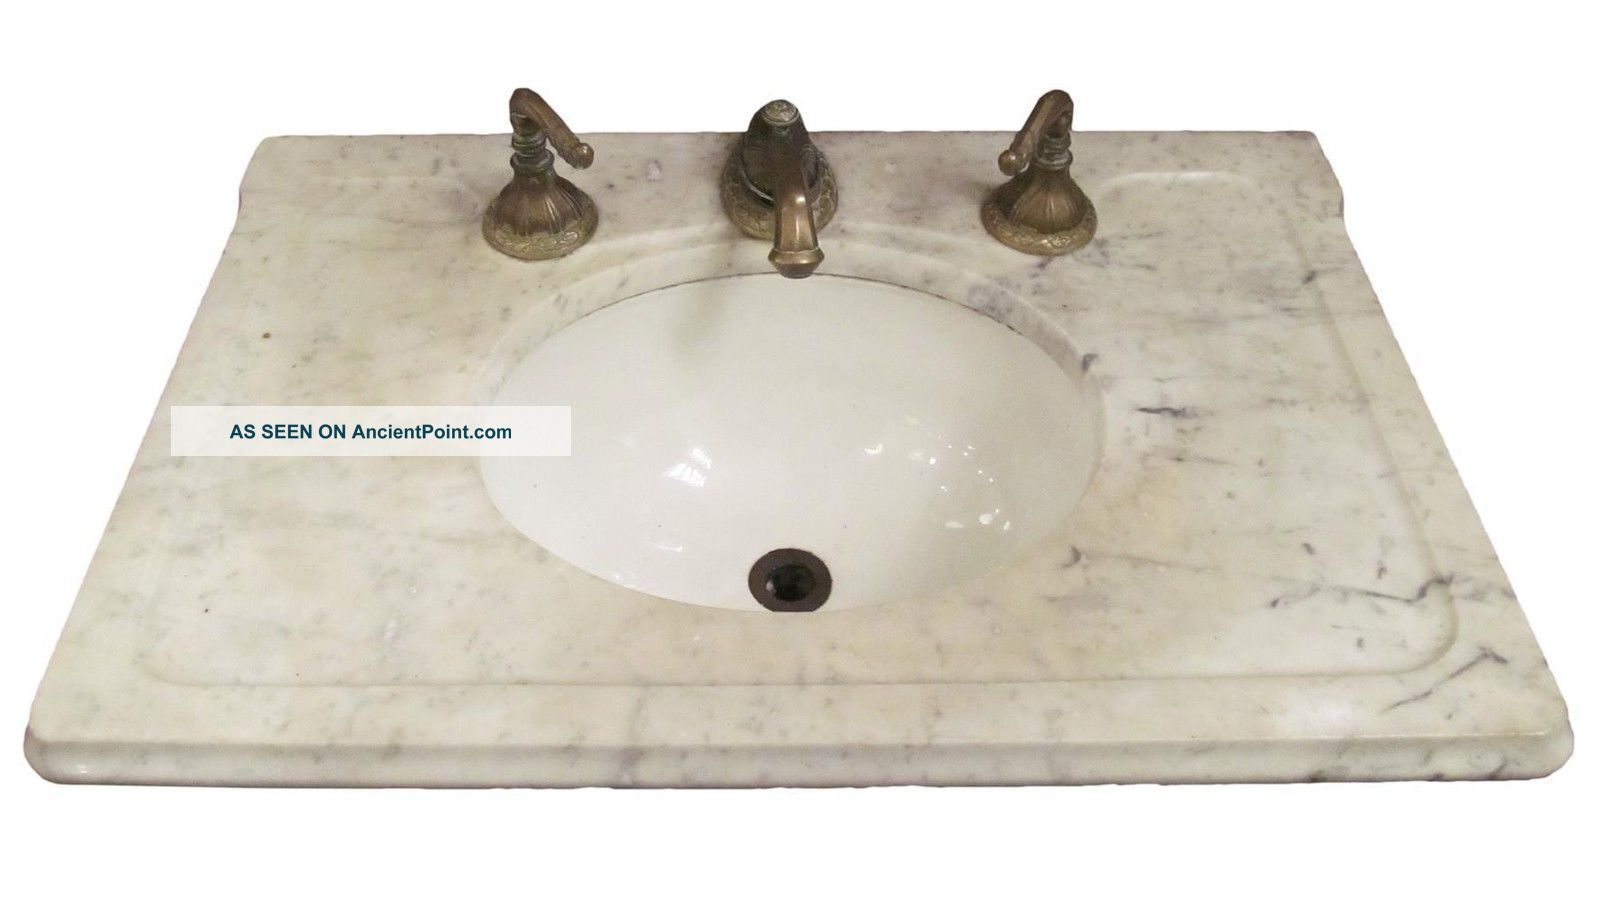 Marble Top Sink With Bowl Sinks photo